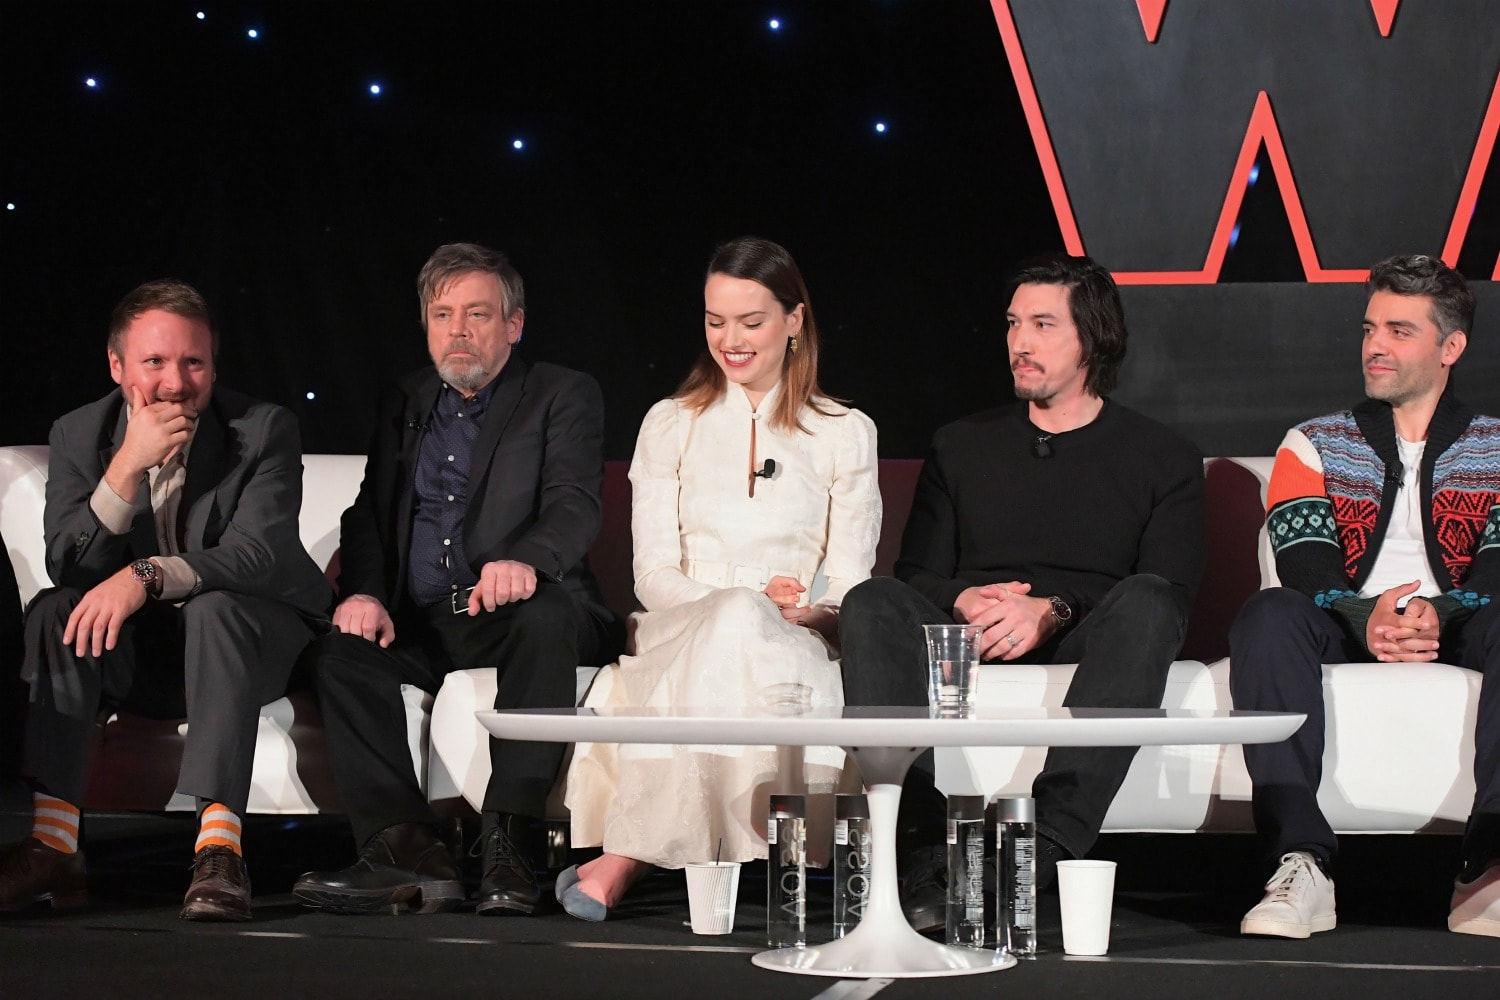 Star Wars Press Event